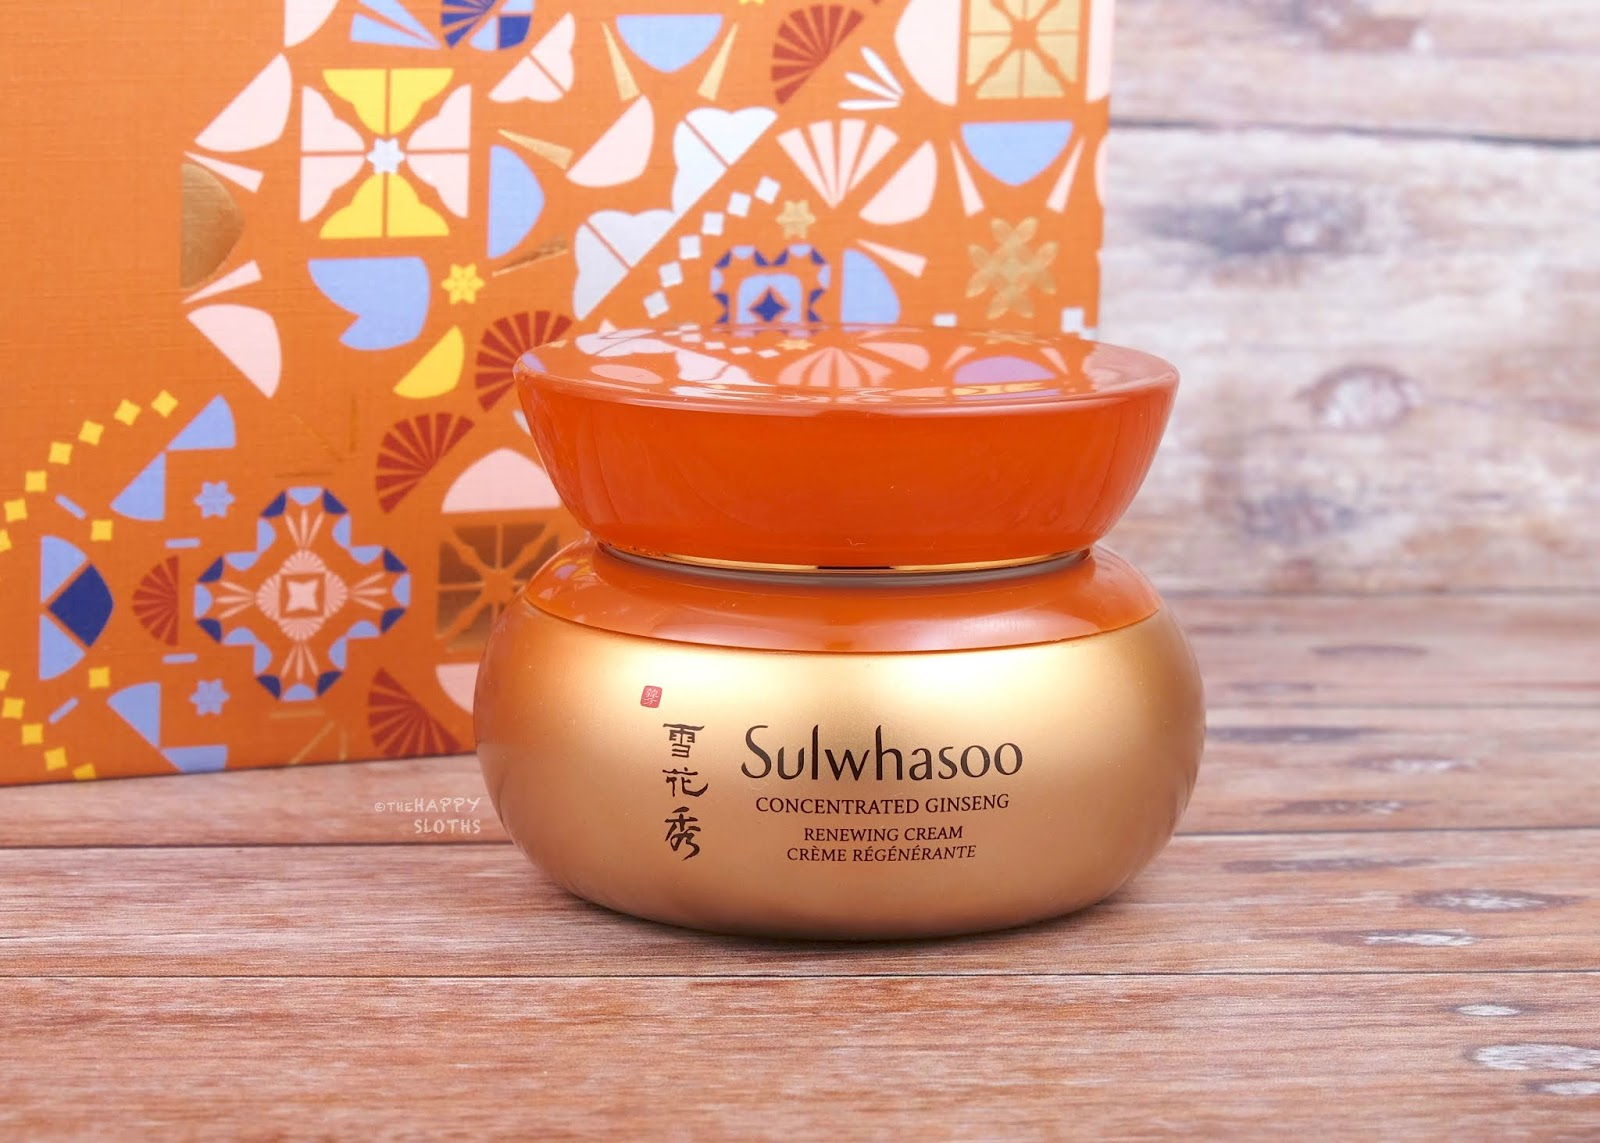 Sulwhasoo | Concentrated Ginseng Renewing Cream: Review